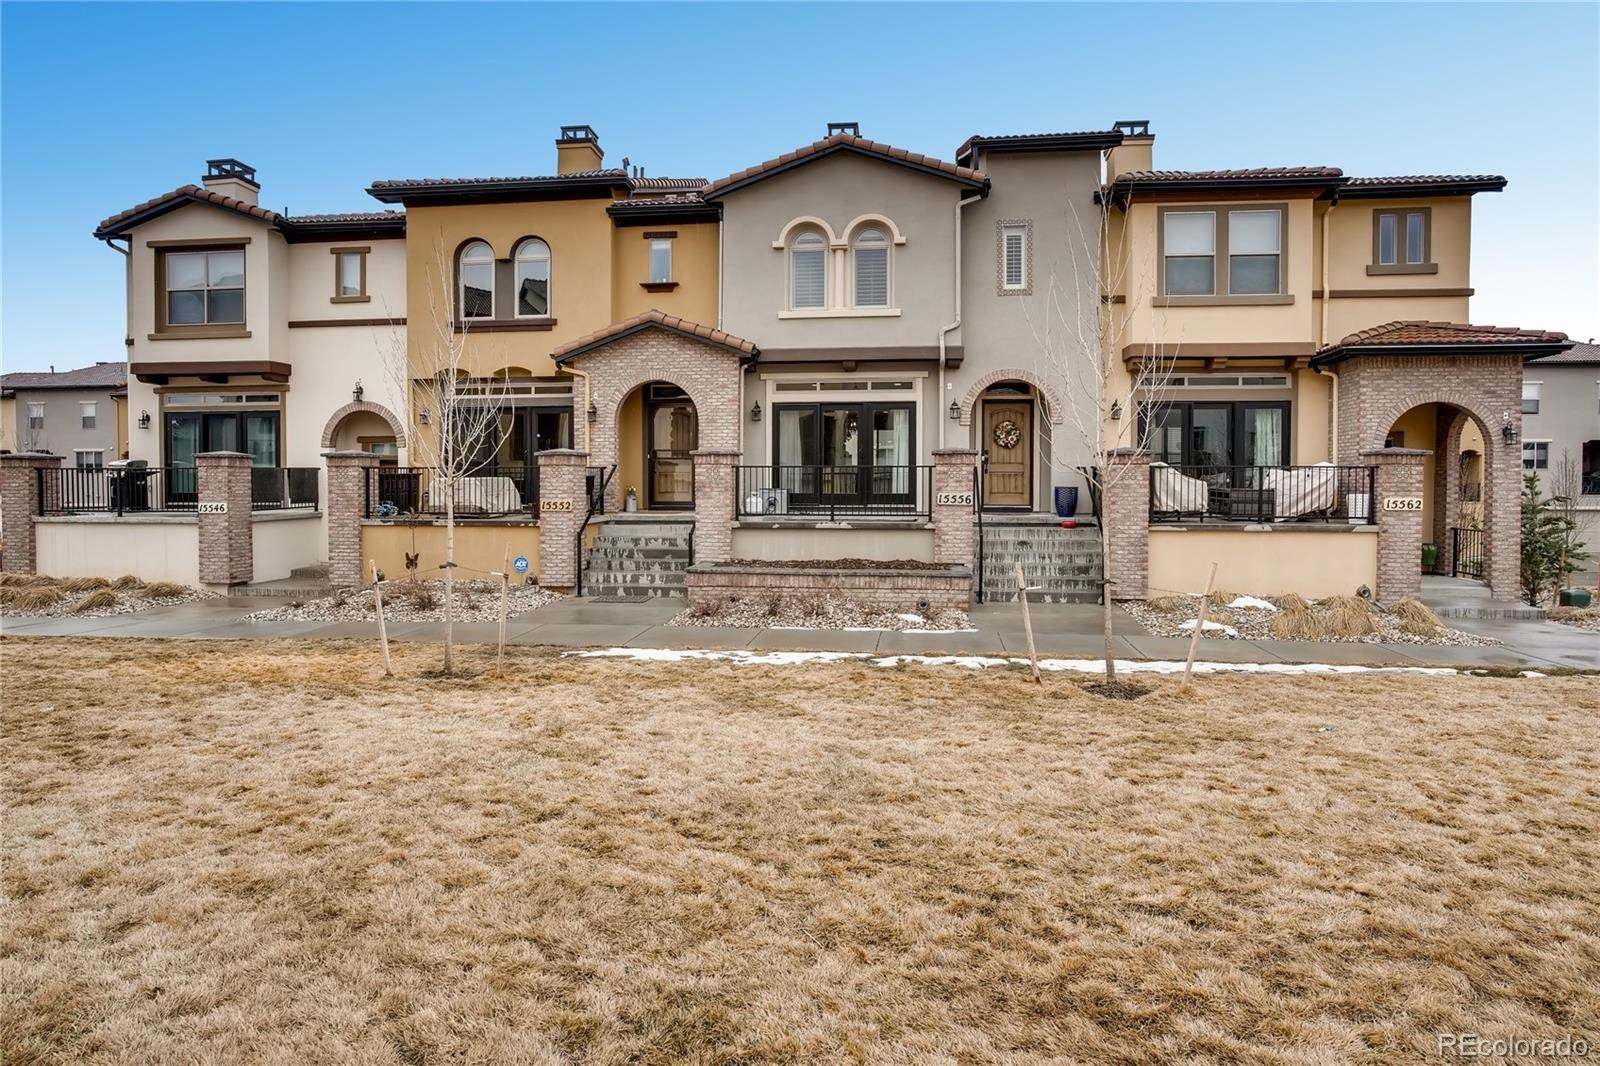 MLS# 7366960 - 4 - 15556 W Washburn Circle, Lakewood, CO 80228